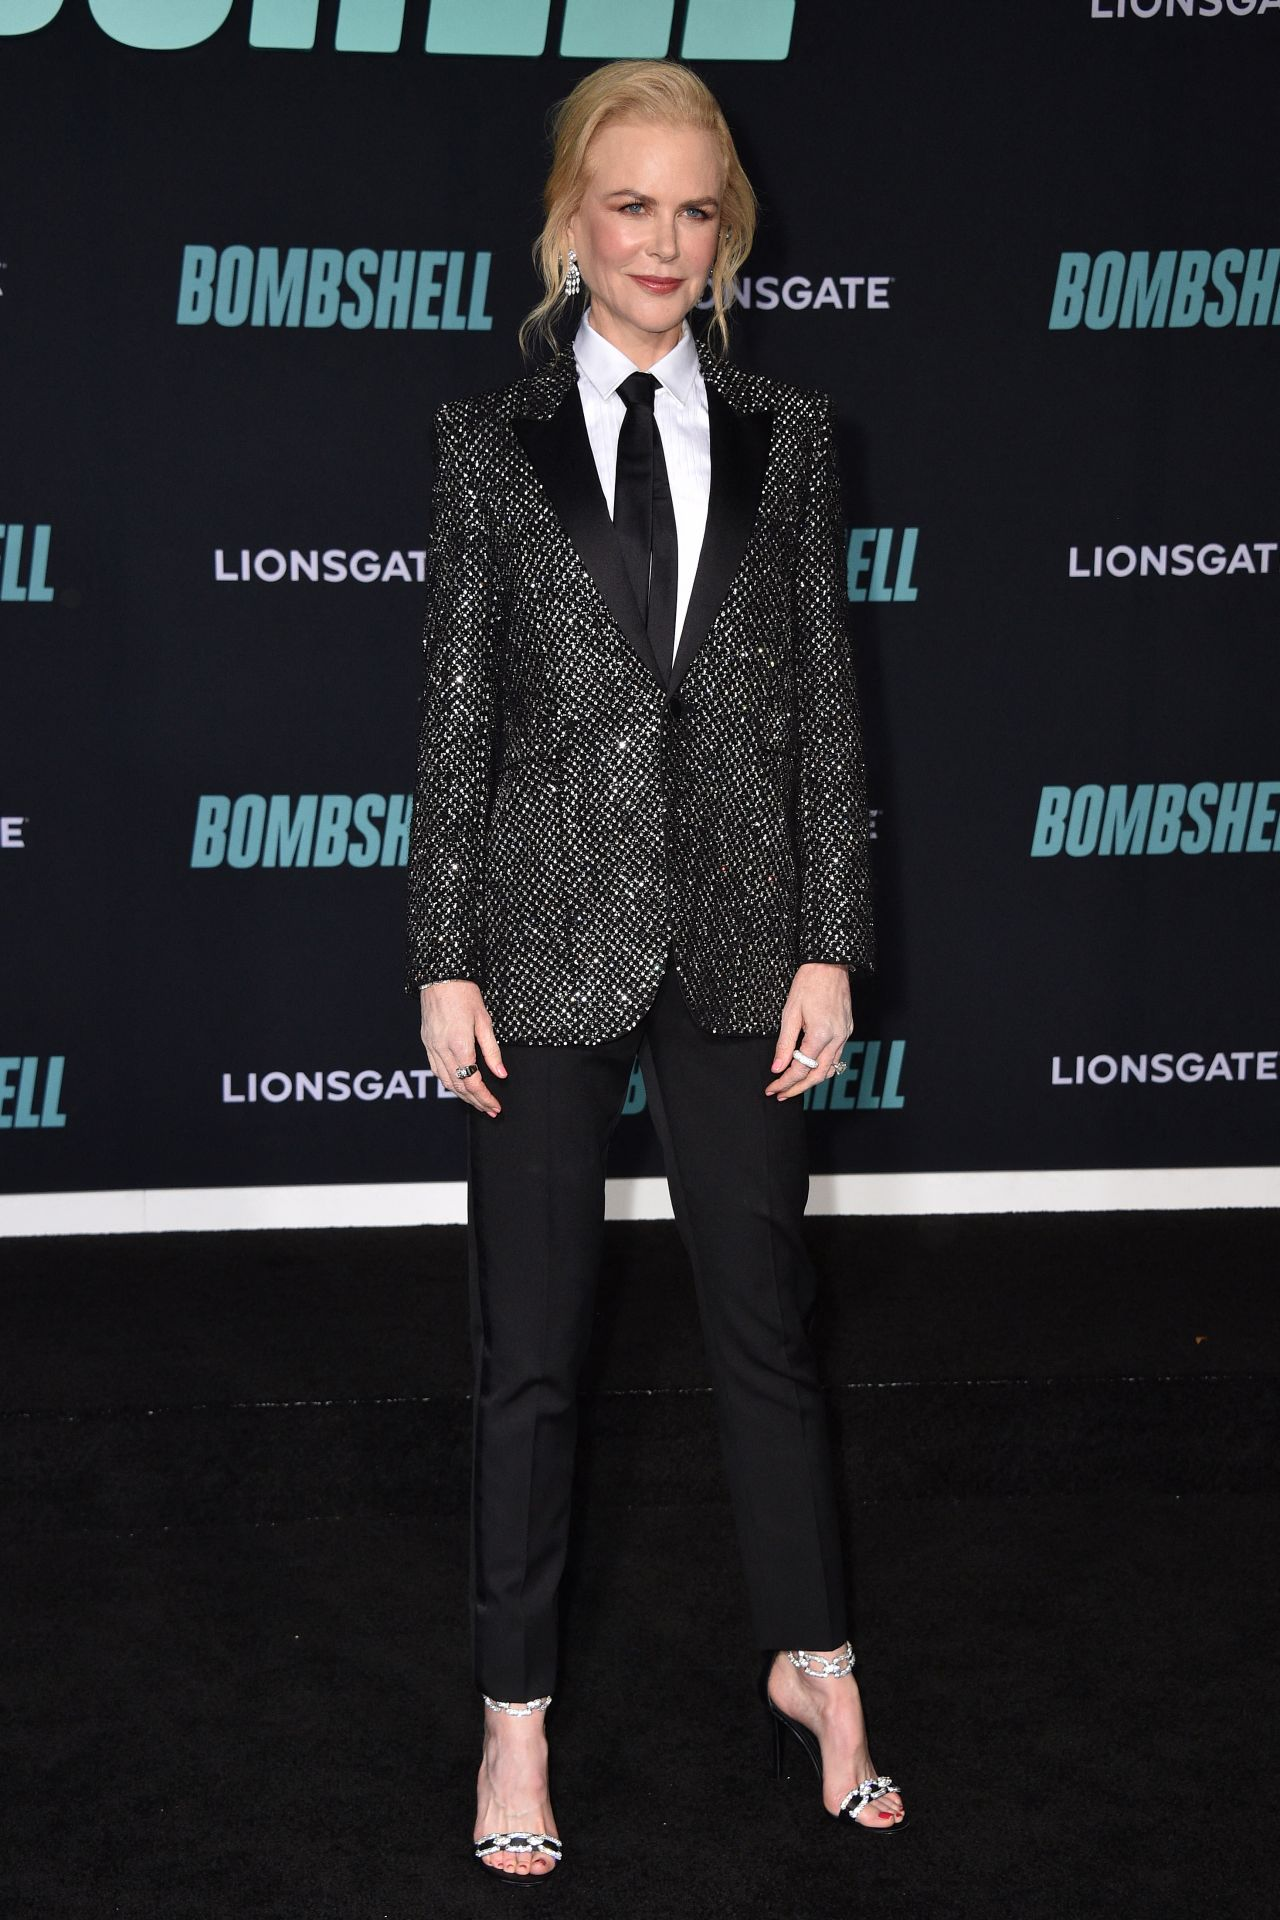 nicole-kidman-in-saint-laurent-the-bombshell-la-screening